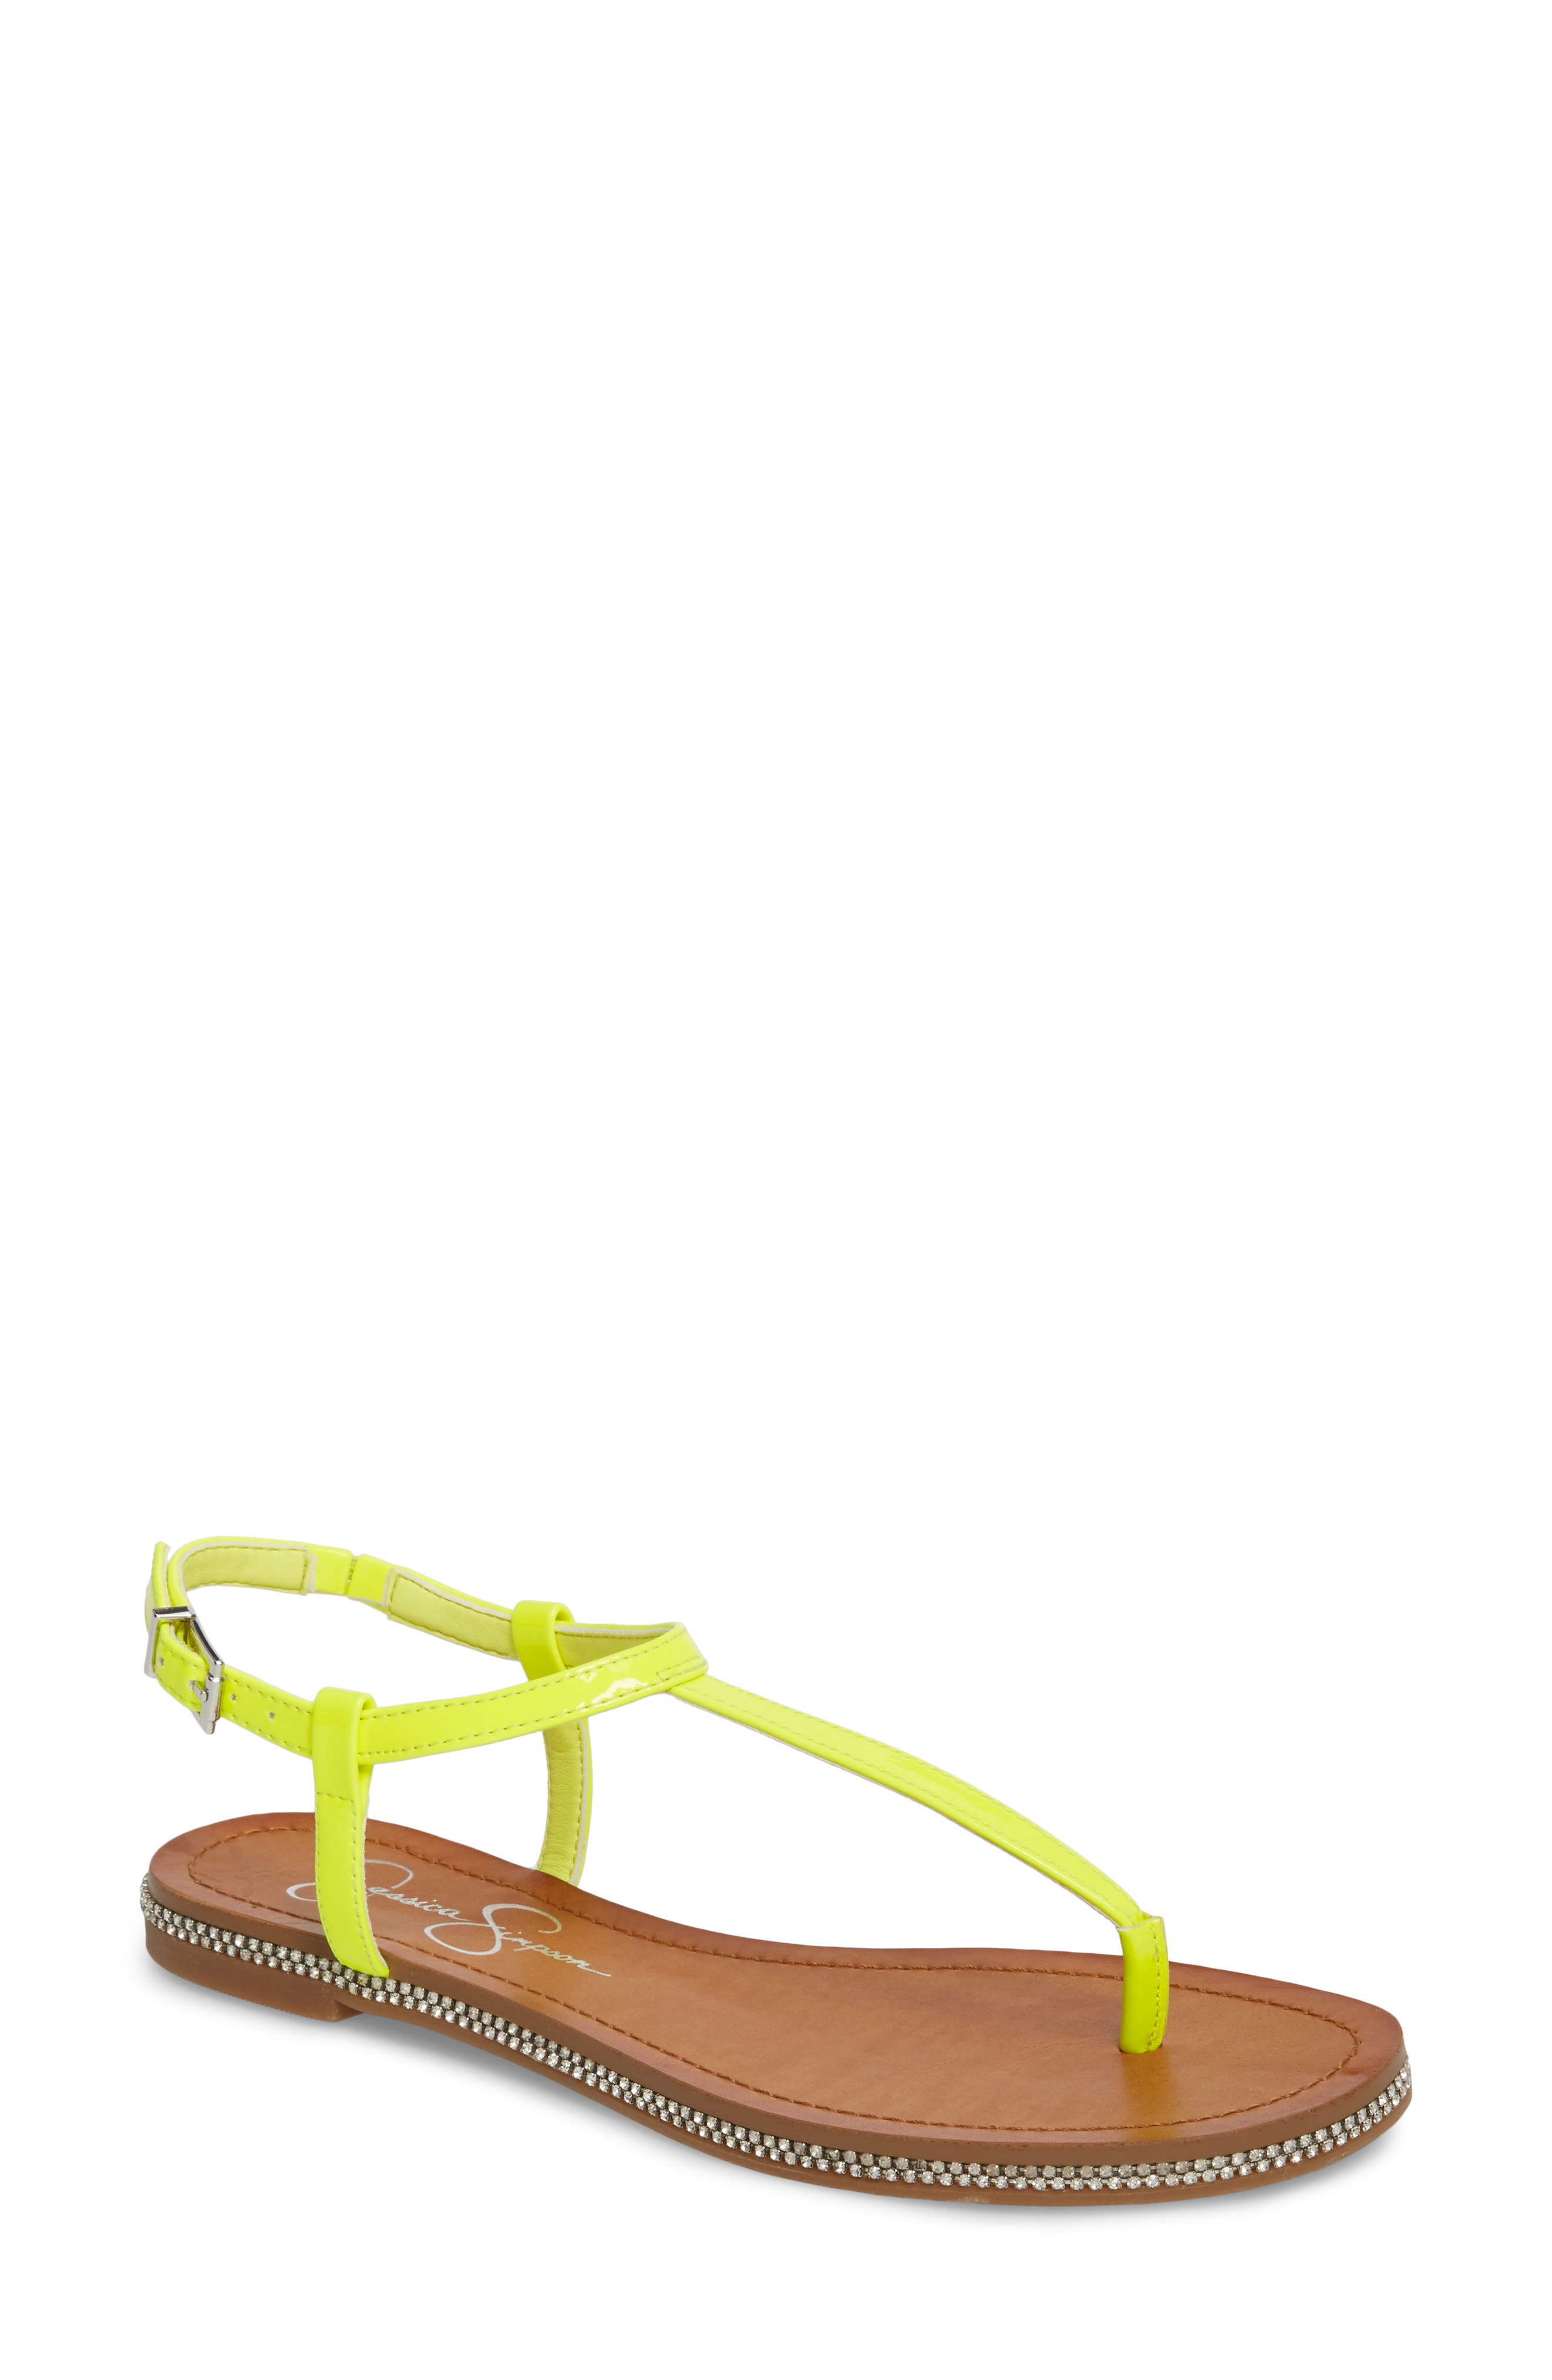 Brimah Sandal,                         Main,                         color, Yellow Shock